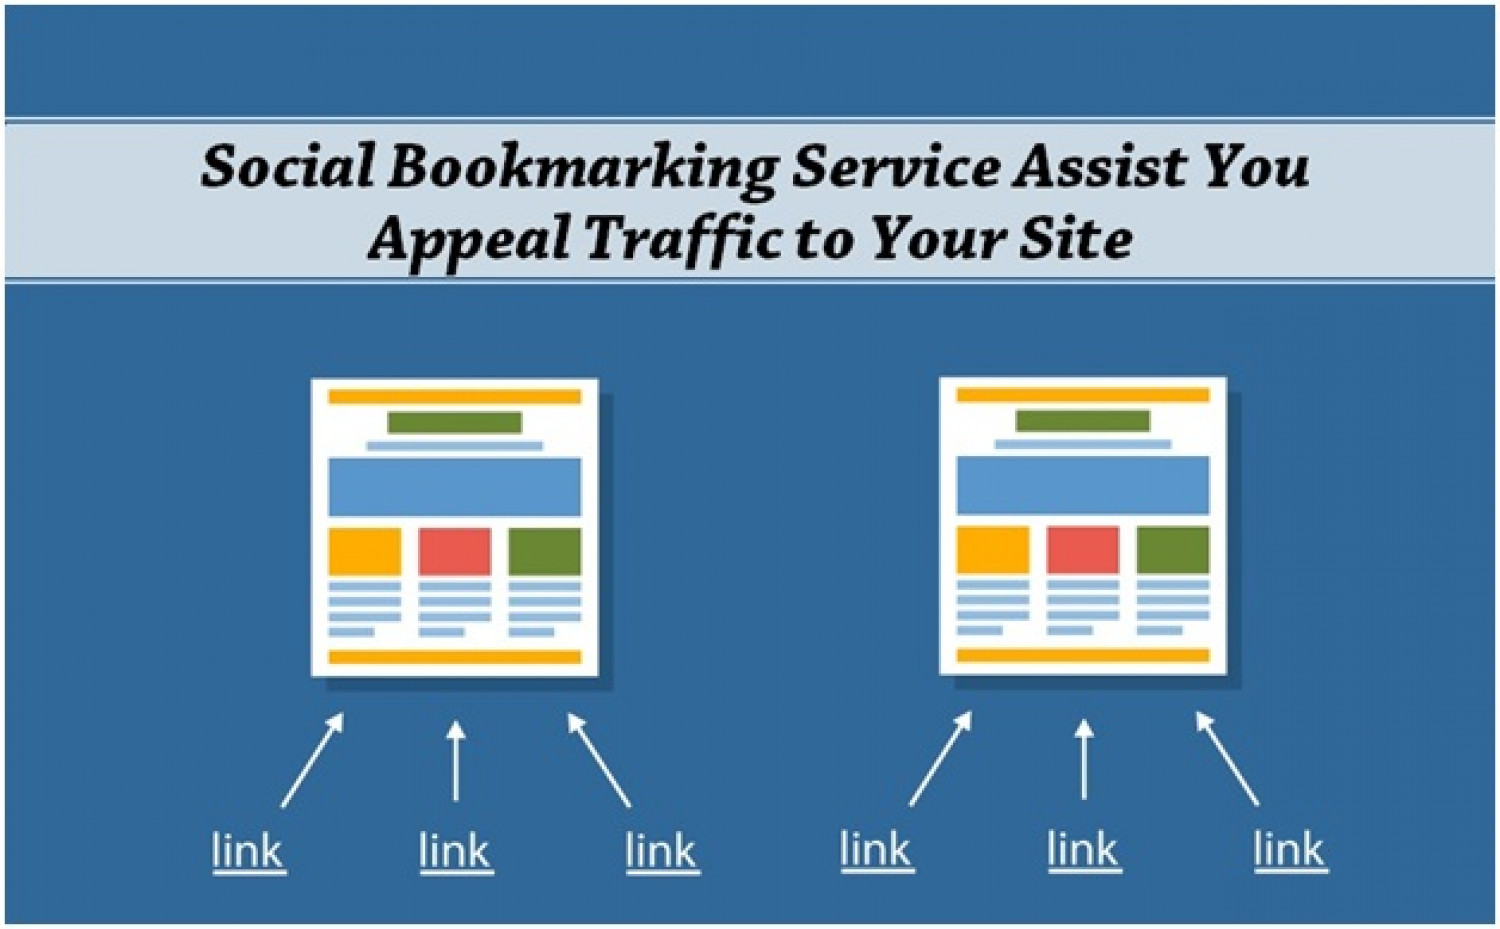 Social Bookmarking Service Assist You Appeal Traffic to Your Site Infographic